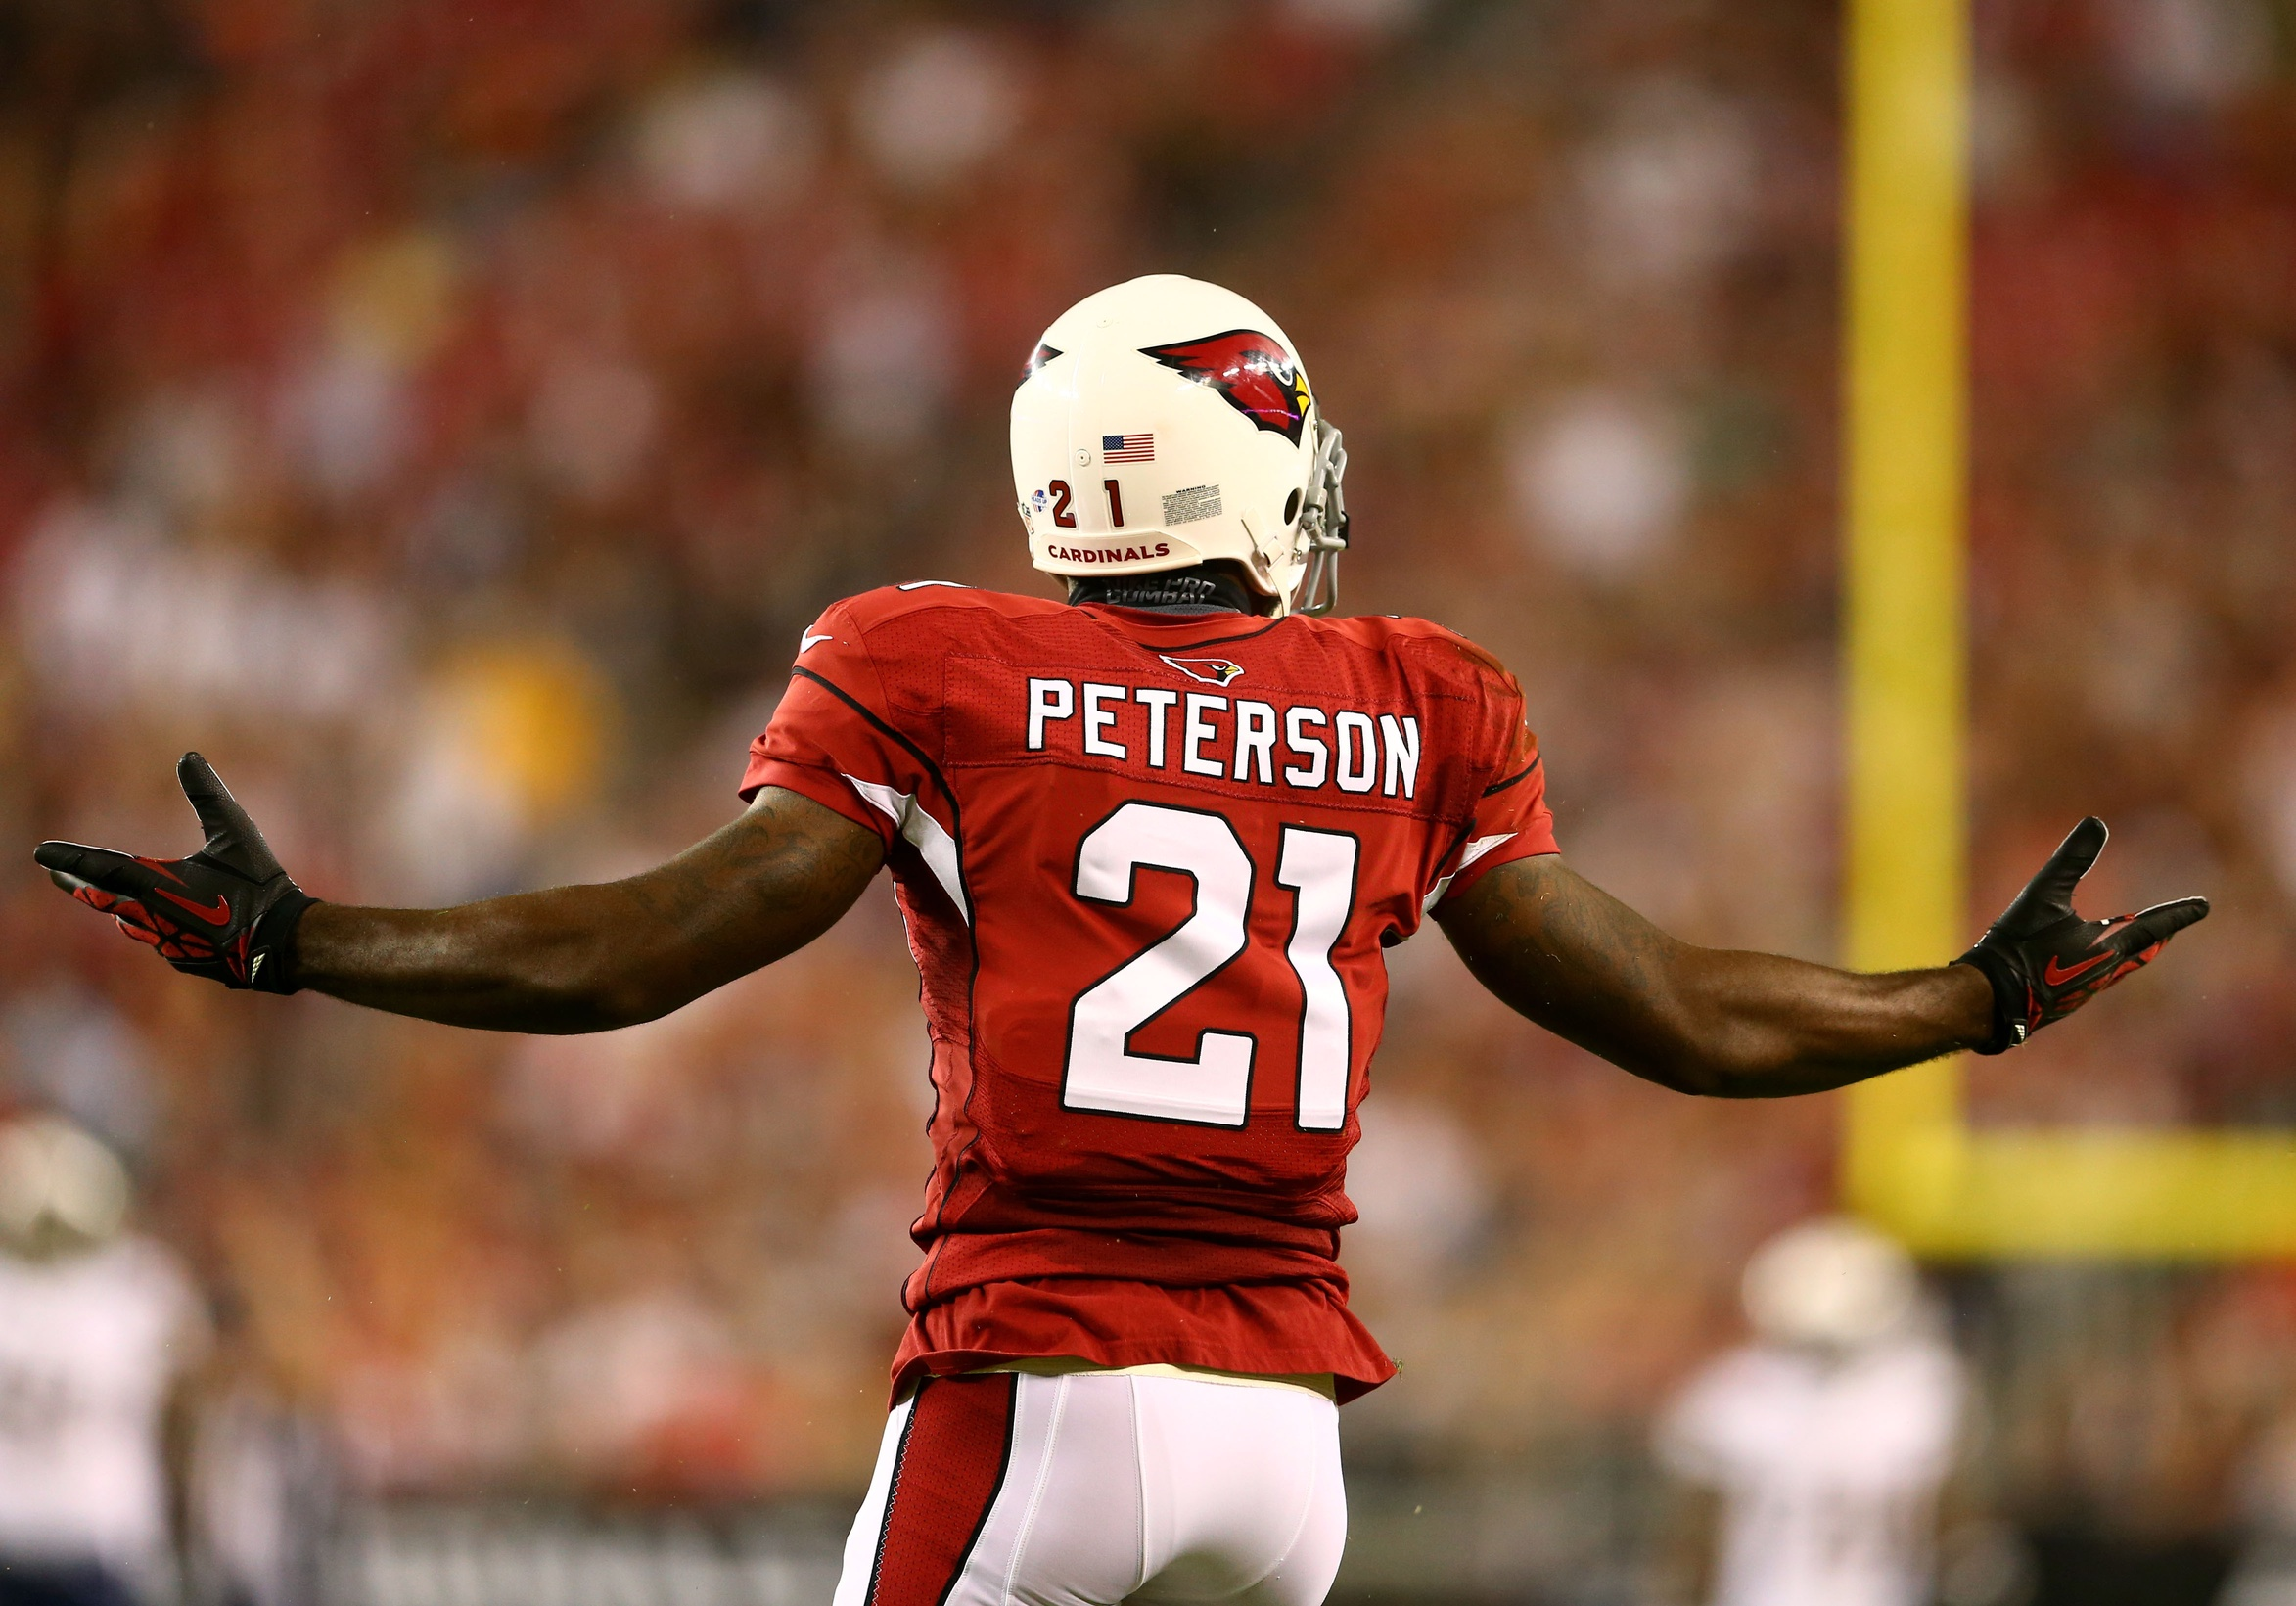 Patrick Peterson Wallpapers High Quality